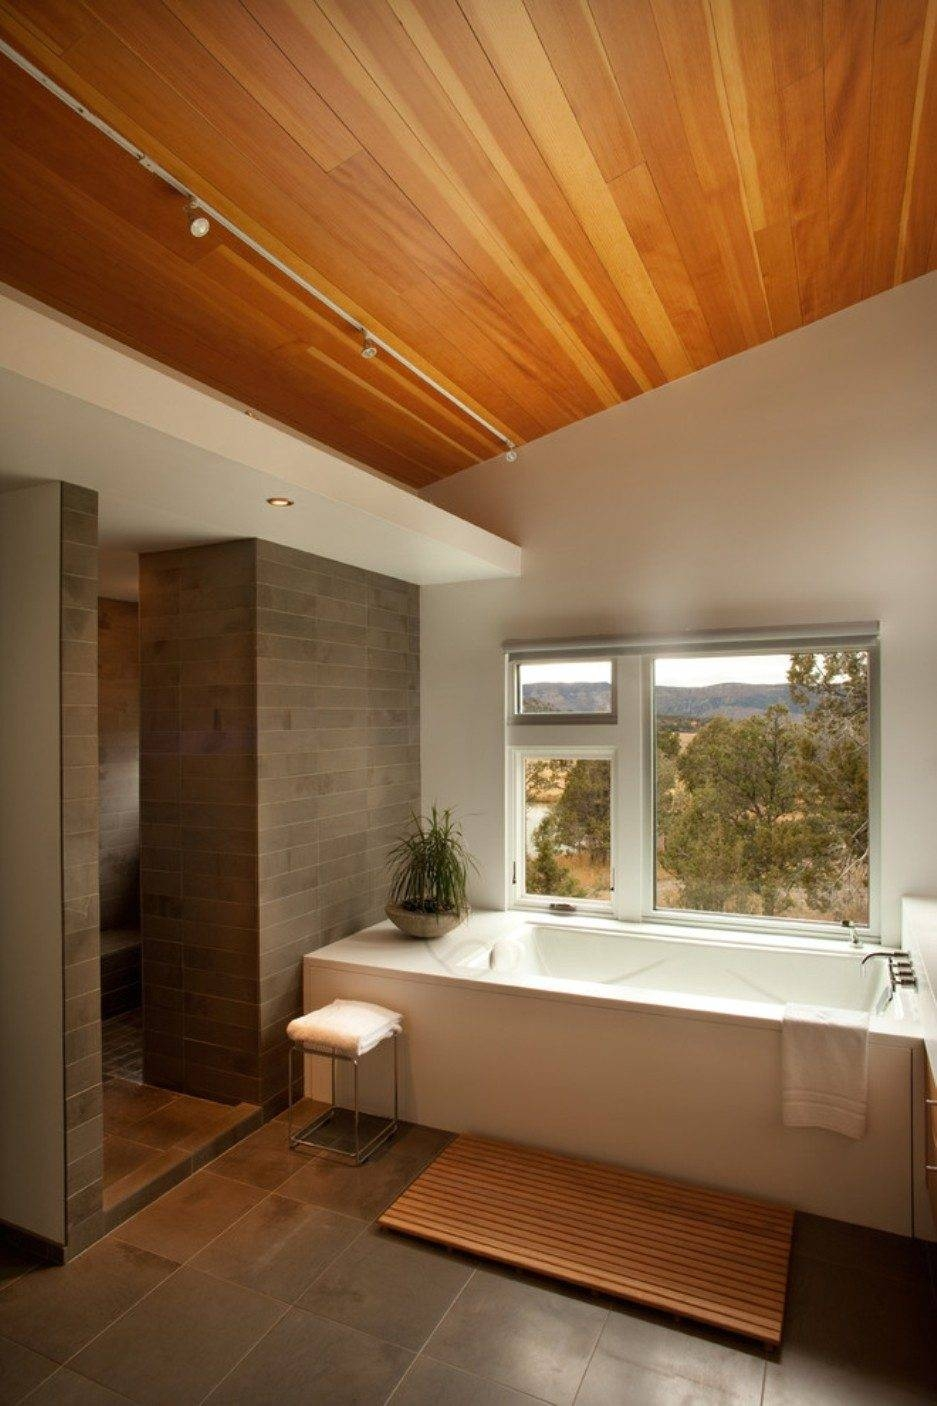 Sloped Ceiling Bathroom Track Lighting – Modern Bathroom Track With Regard To Sloped Ceiling Track Lighting (View 12 of 15)